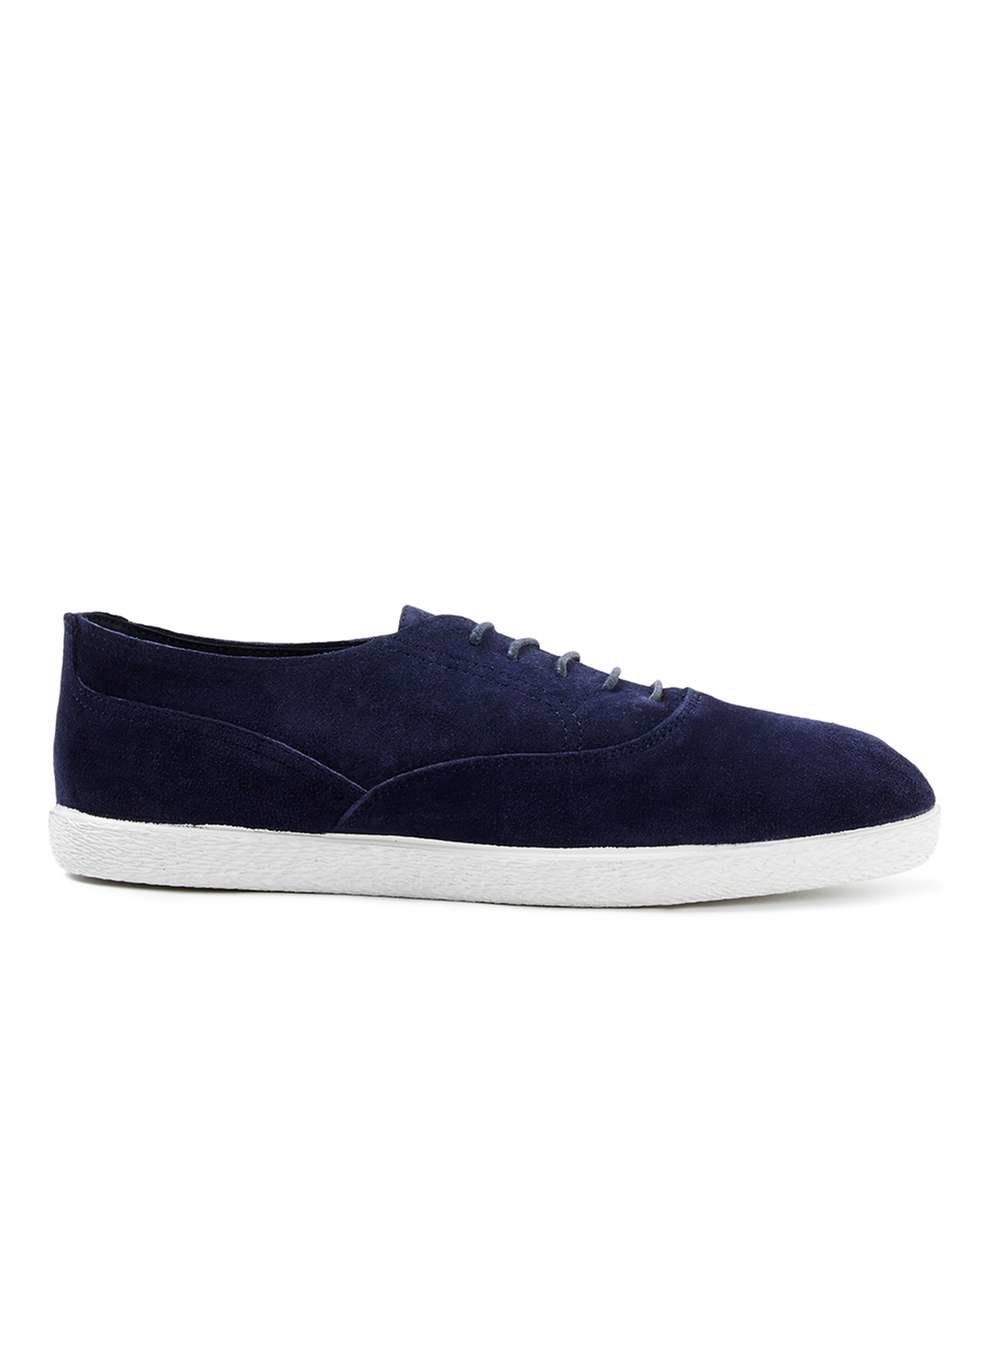 topman navy suede casual oxford shoes in blue for lyst